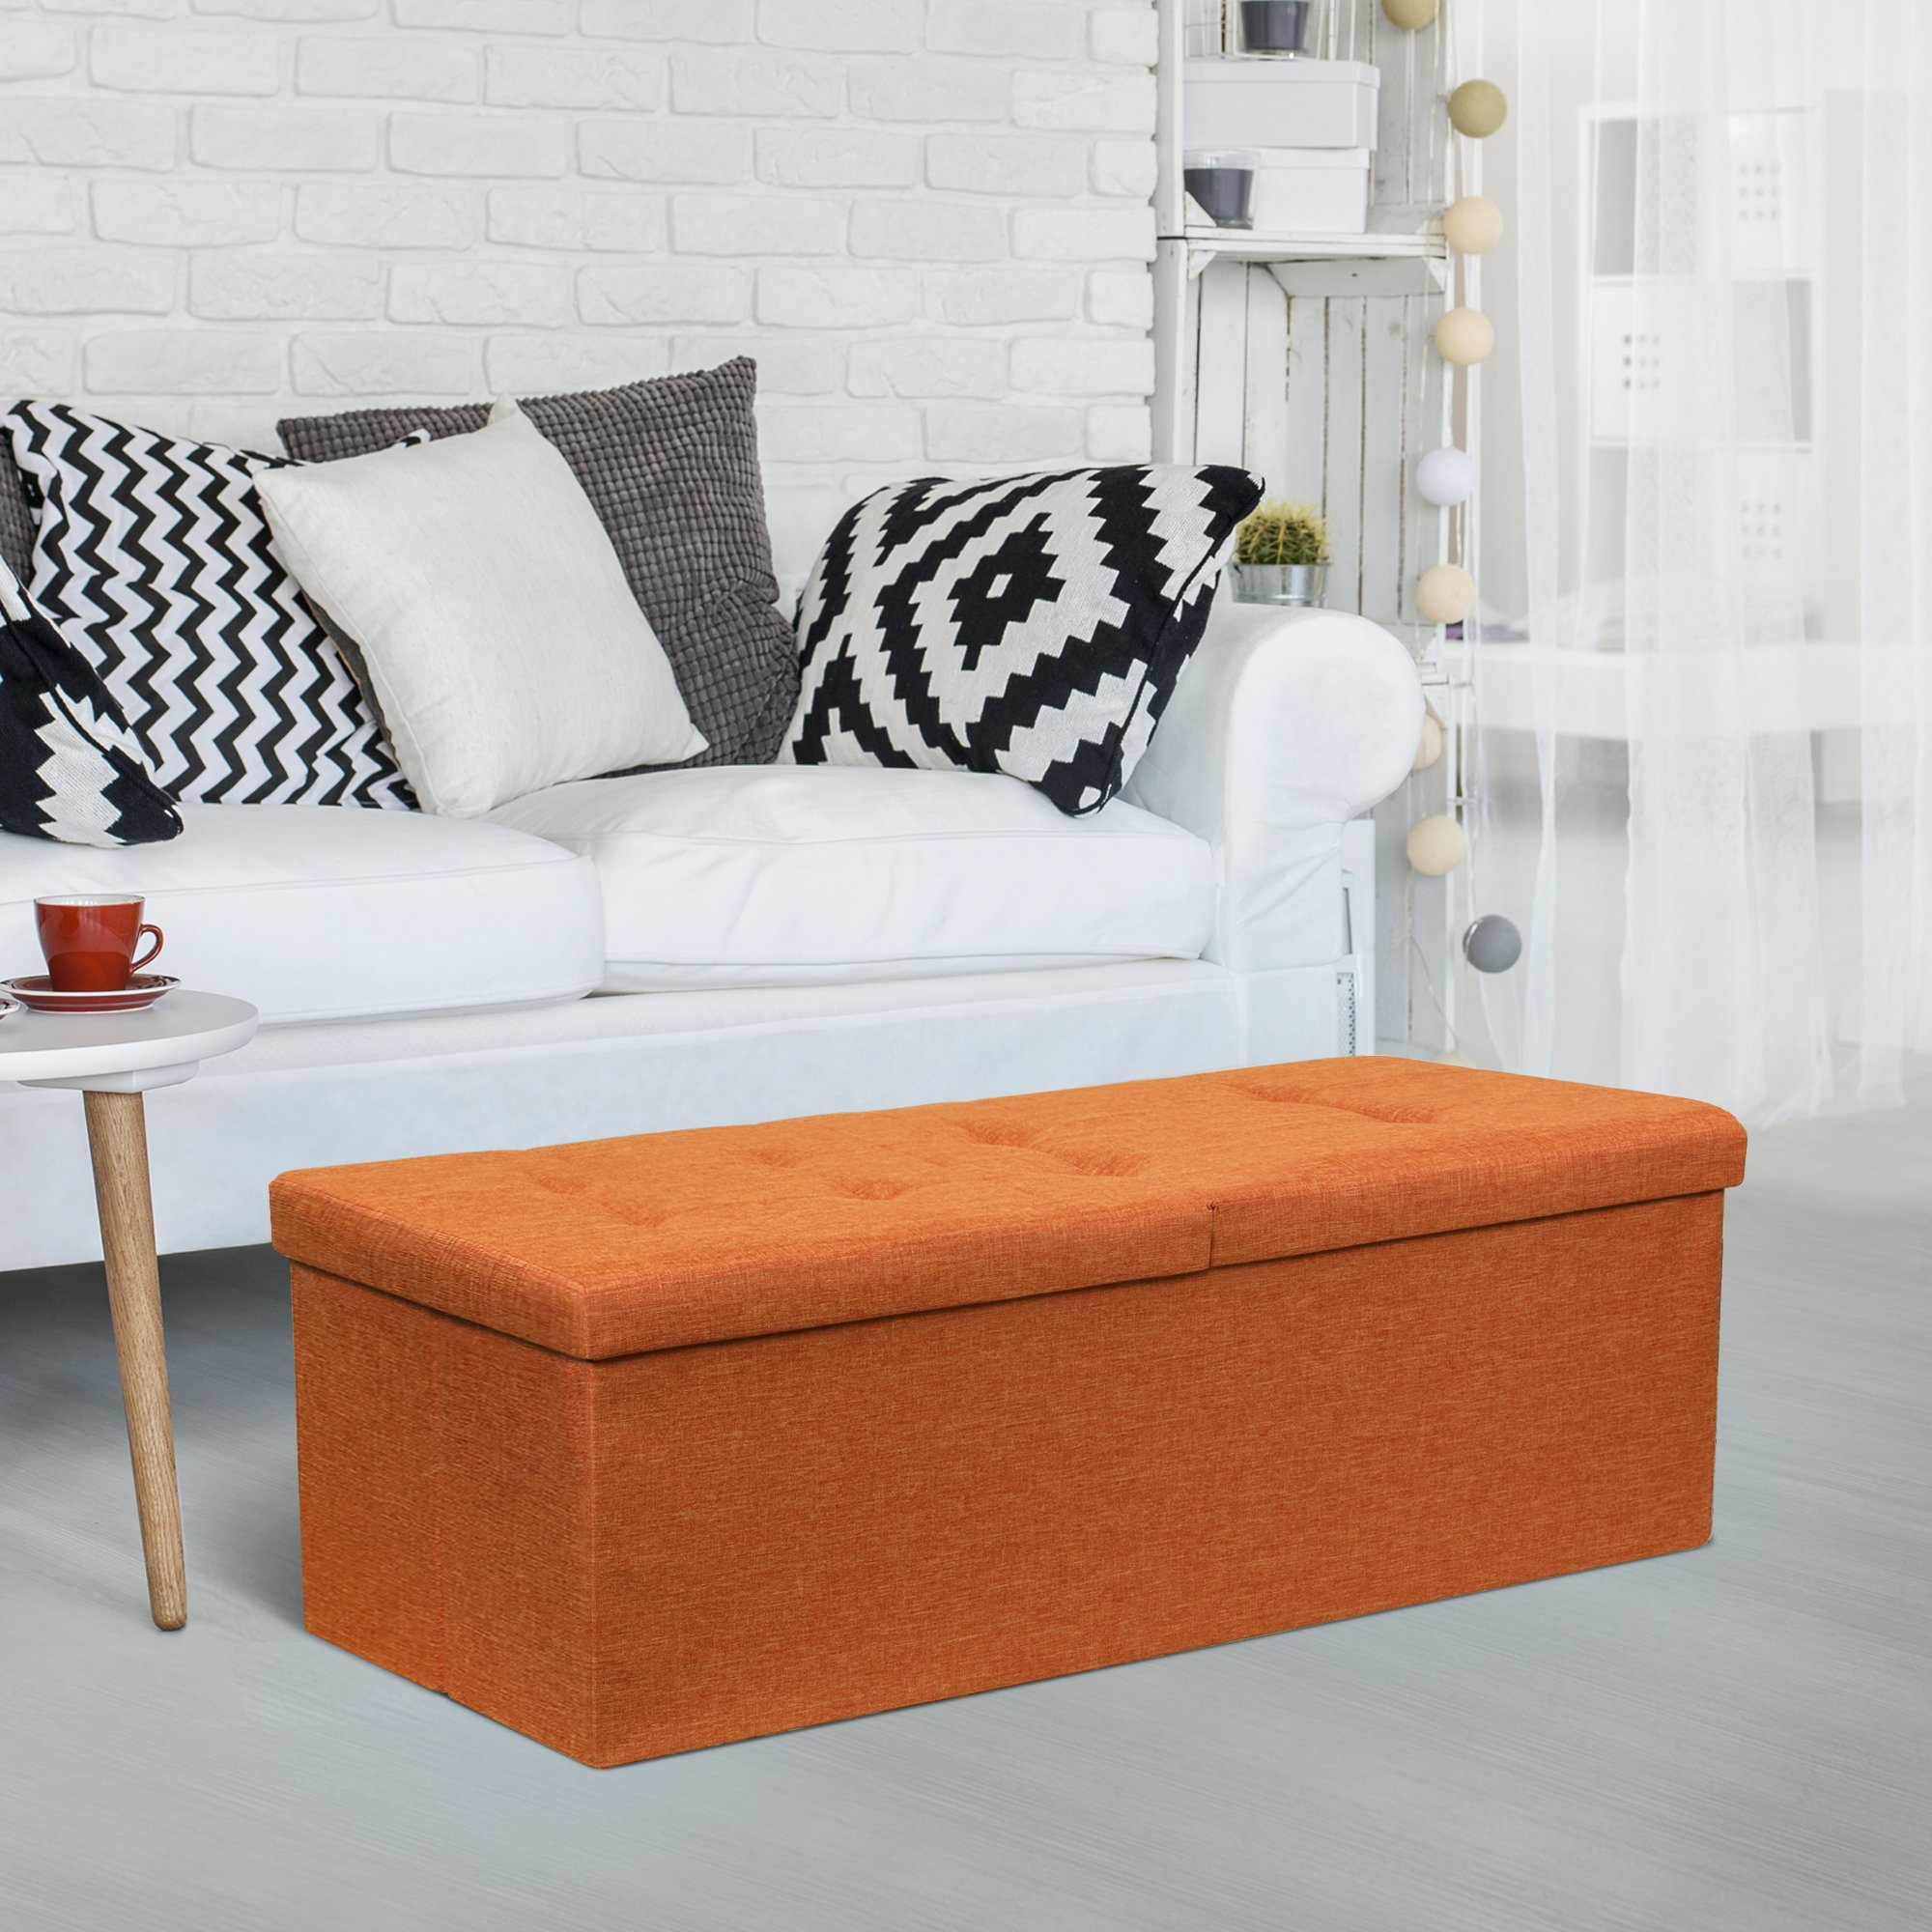 Otto & Ben 45″ Storage Ottoman with Smart Lift Top, Folding Large Foot Rest Stools Table Ottomans Bench with Linen Fabric